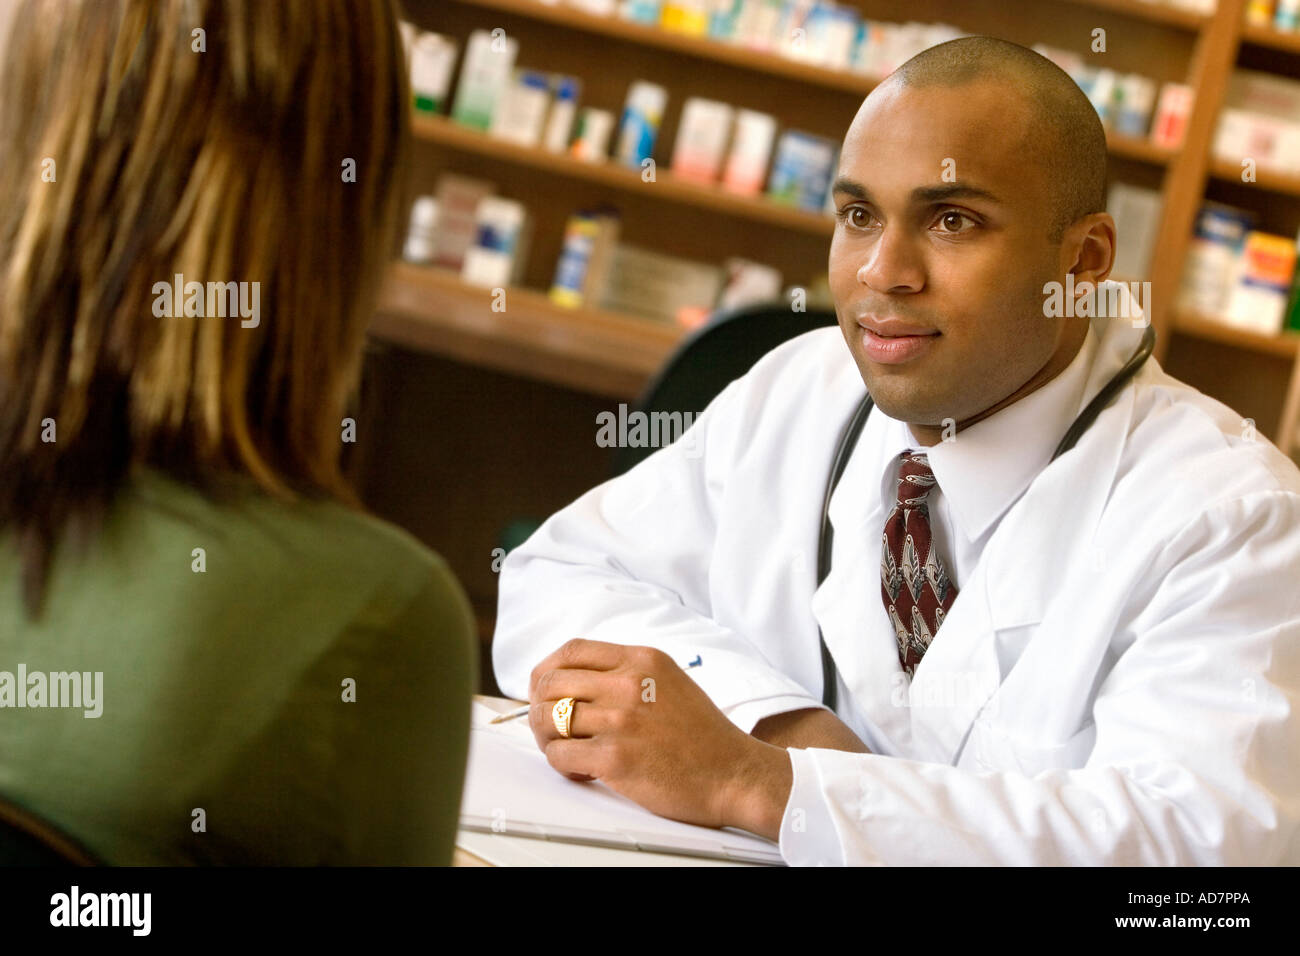 Pharmacist consultation - Stock Image